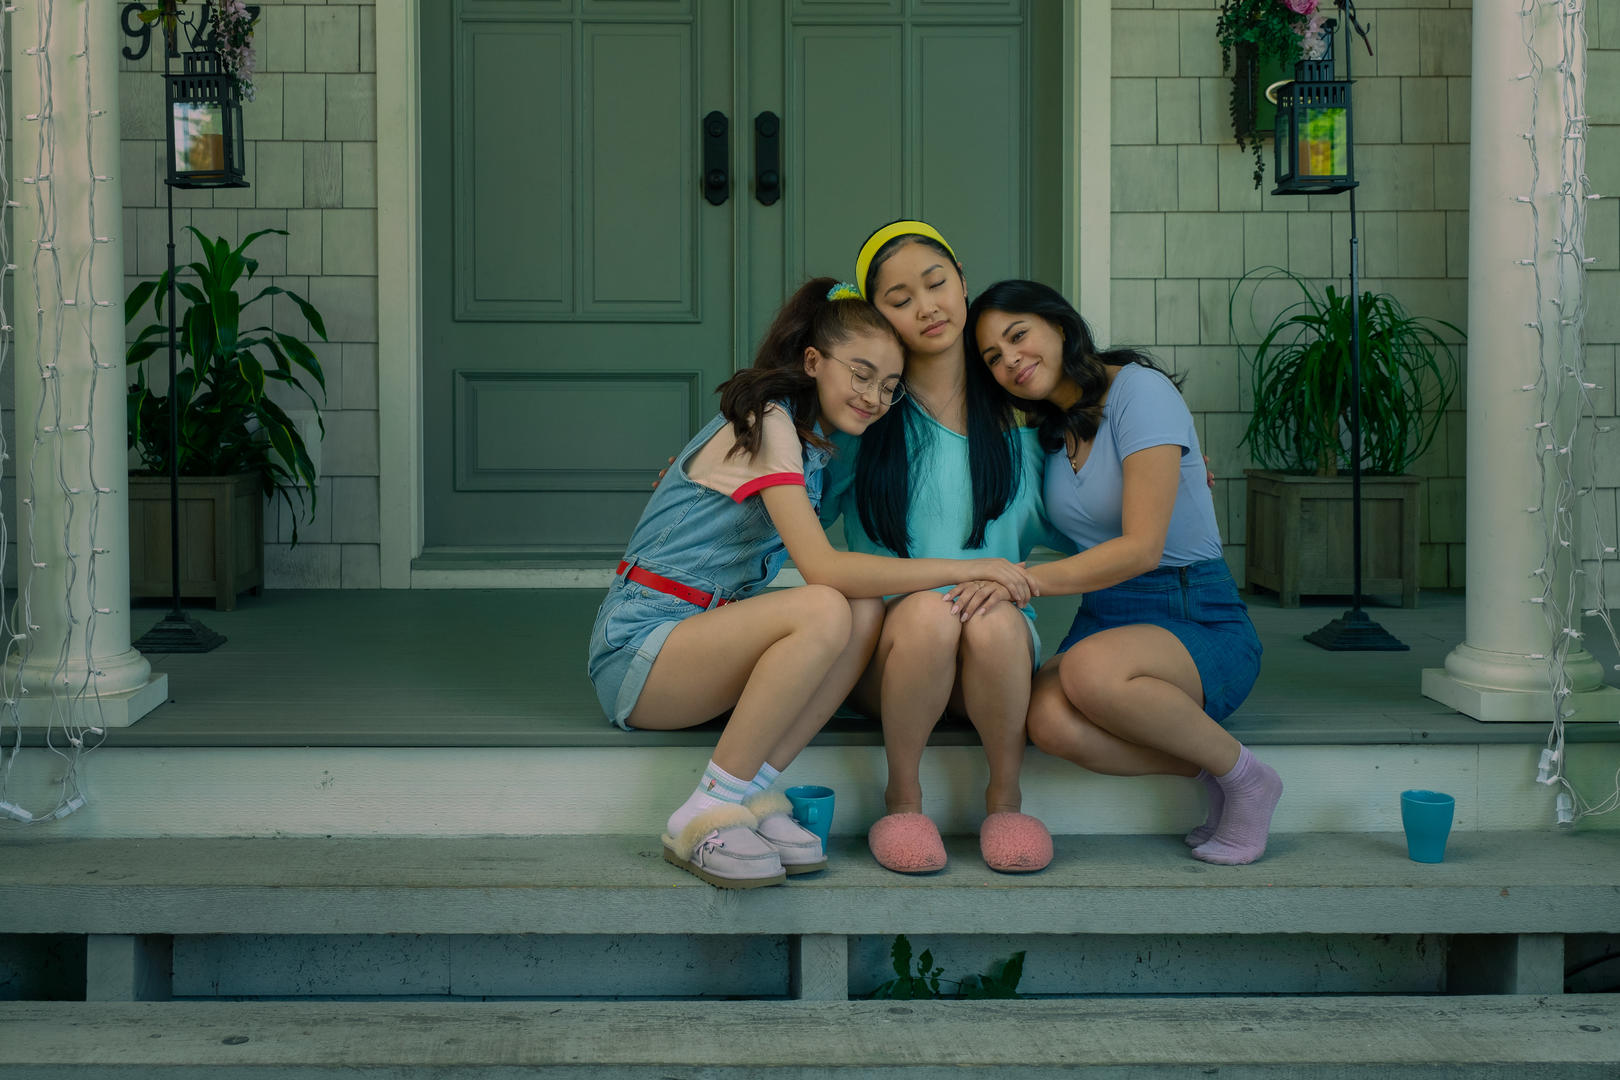 TO ALL THE BOYS: ALWAYS AND FOREVER (L-R): ANNA CATHCART as KITTY, LANA CONDOR as LARA JEAN, JANEL PARRISH as MARGOT. KATIE YU/NETFLIX © 2021